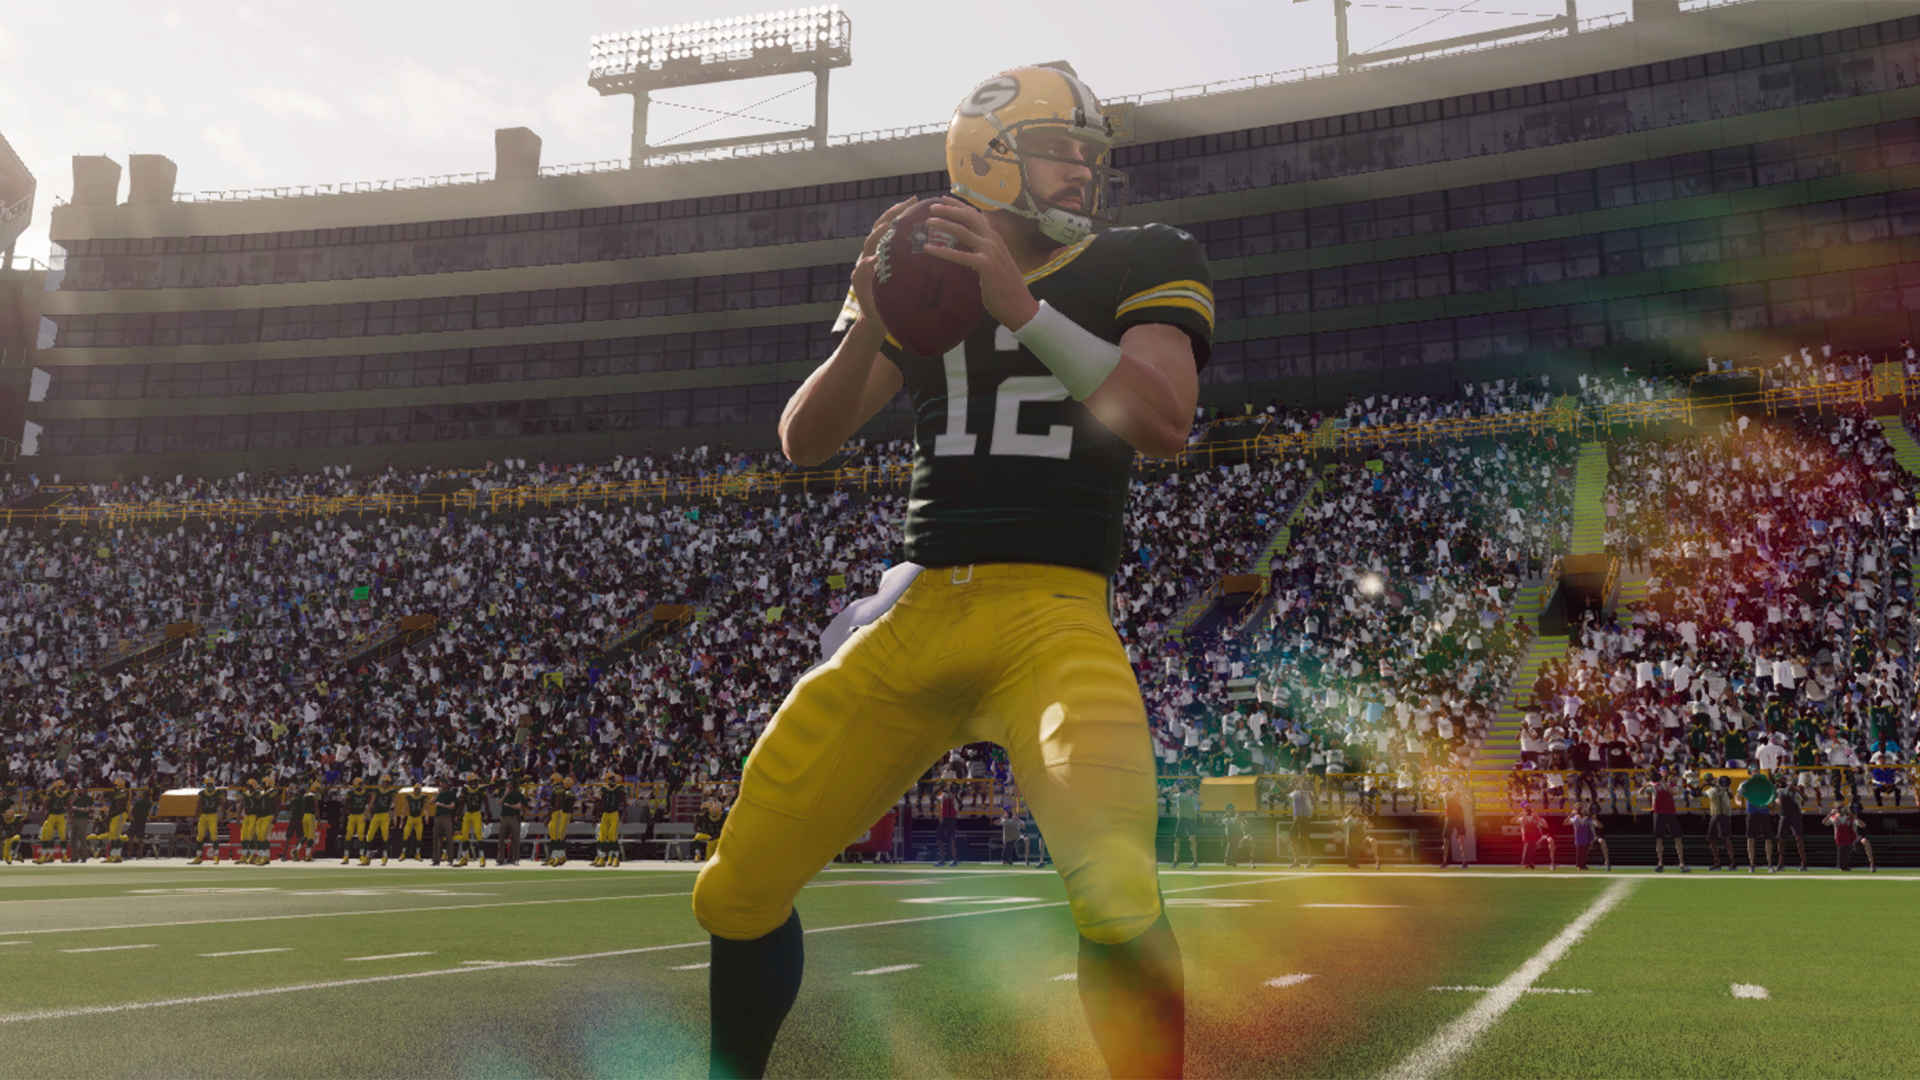 Could Aaron Rodgers grace the cover of Madden 22?